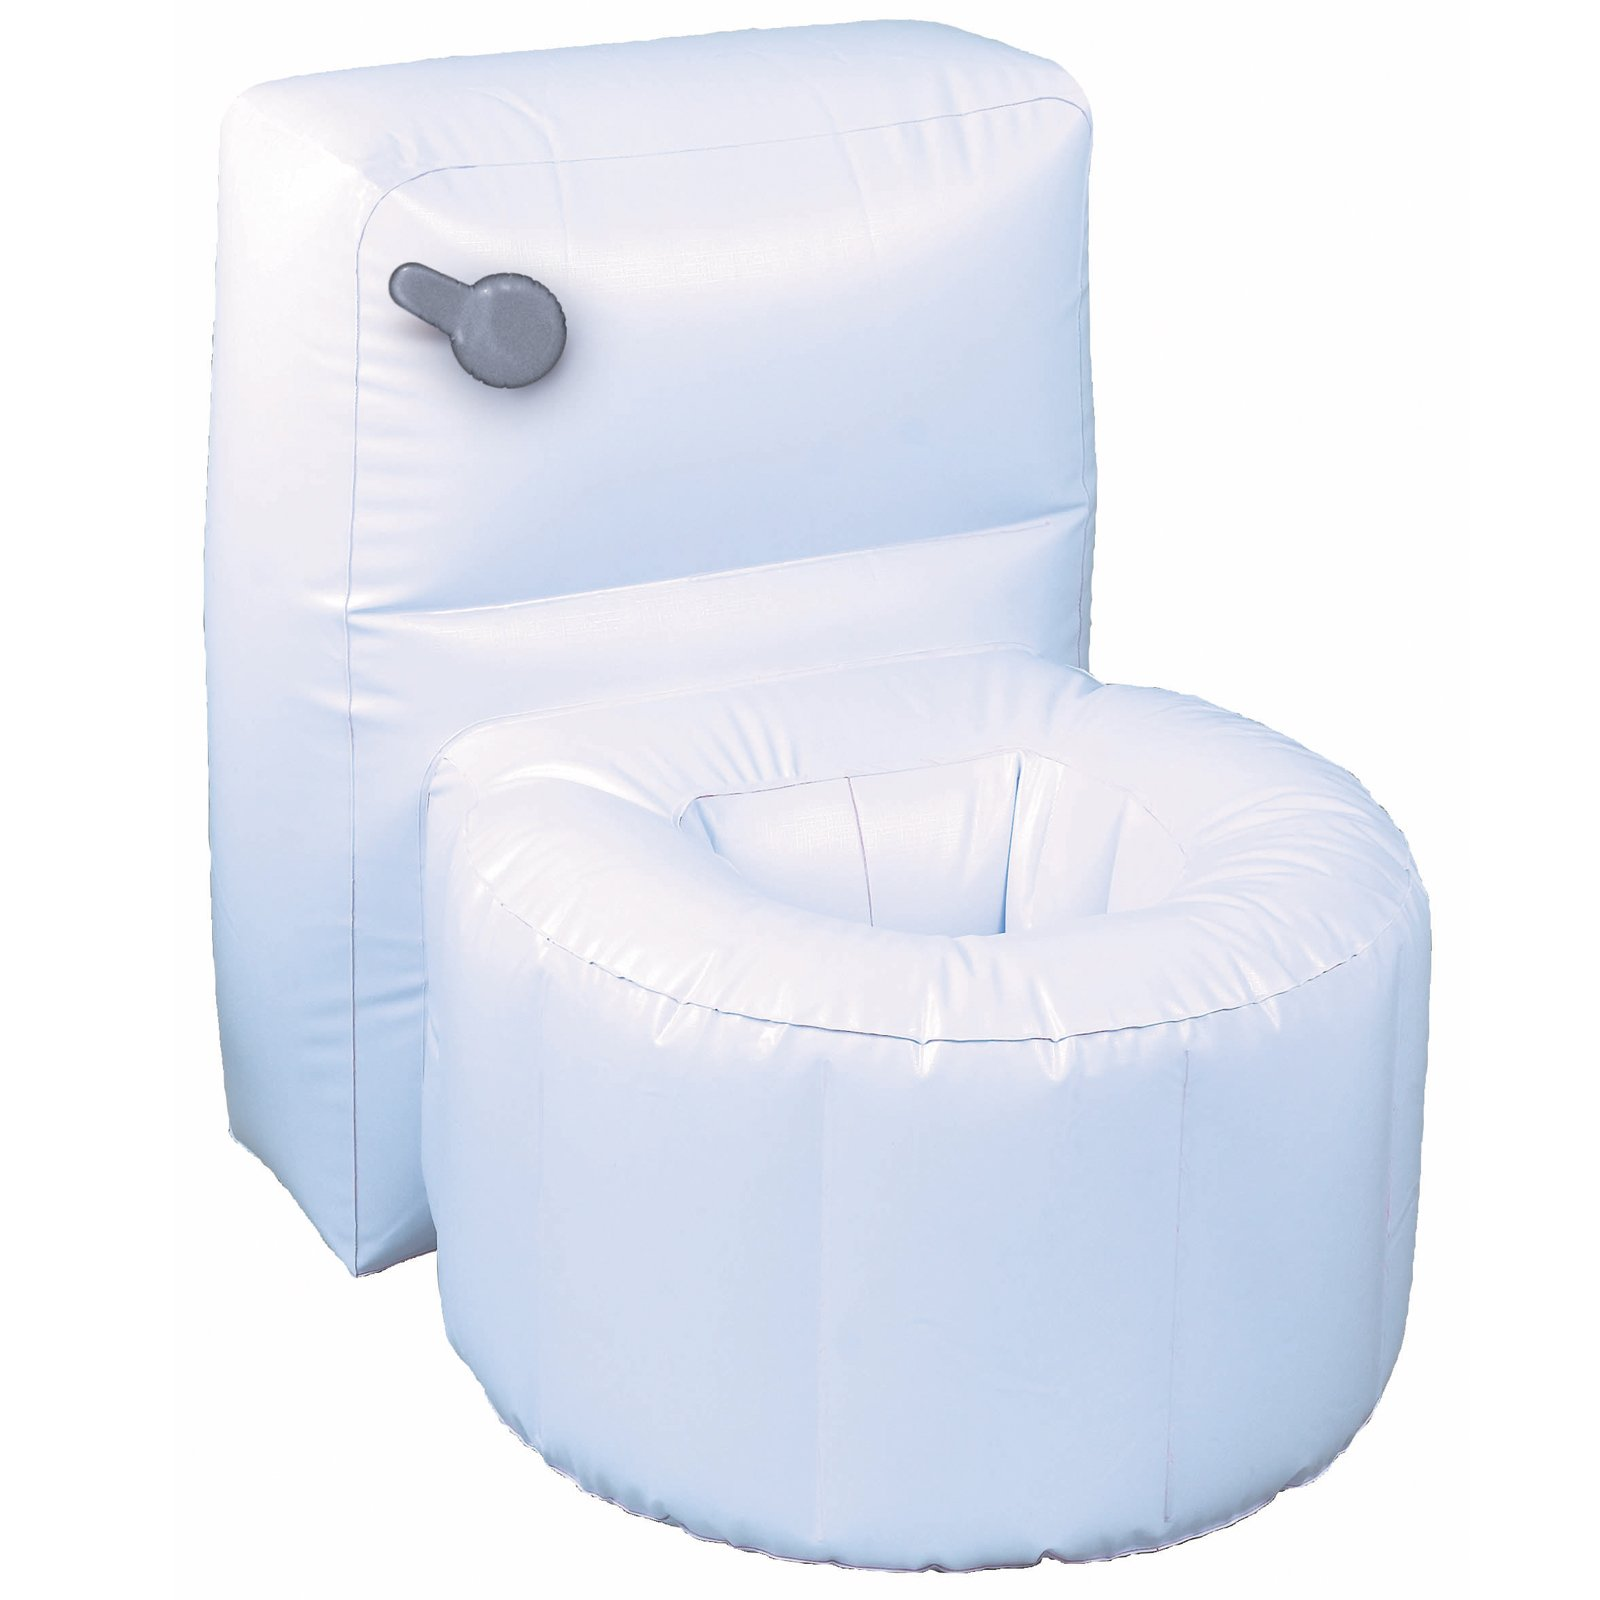 Over the Hill Inflatable Portable Potty